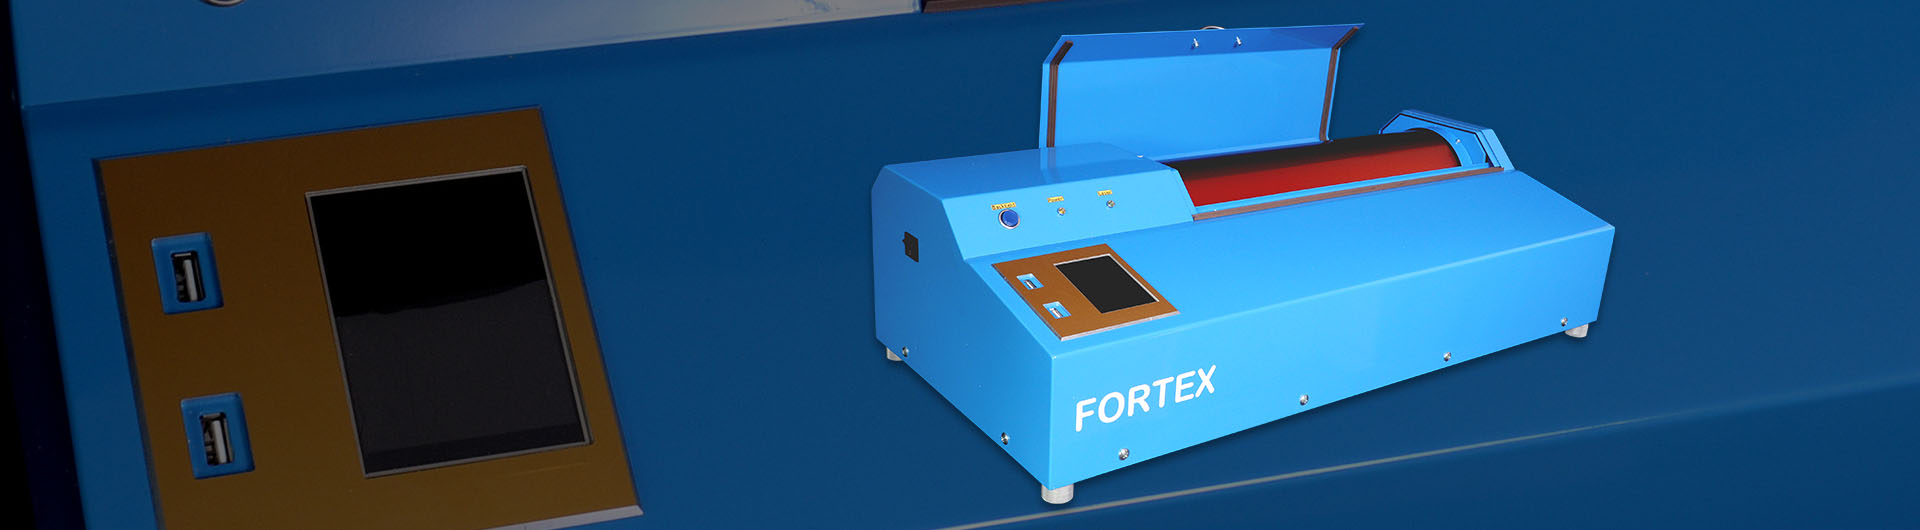 Fortex Engineering Ltd Printed Circuit Boards Chemical Engraved Board Cleaning Machine Metal Plates Etching And Milling Equipment